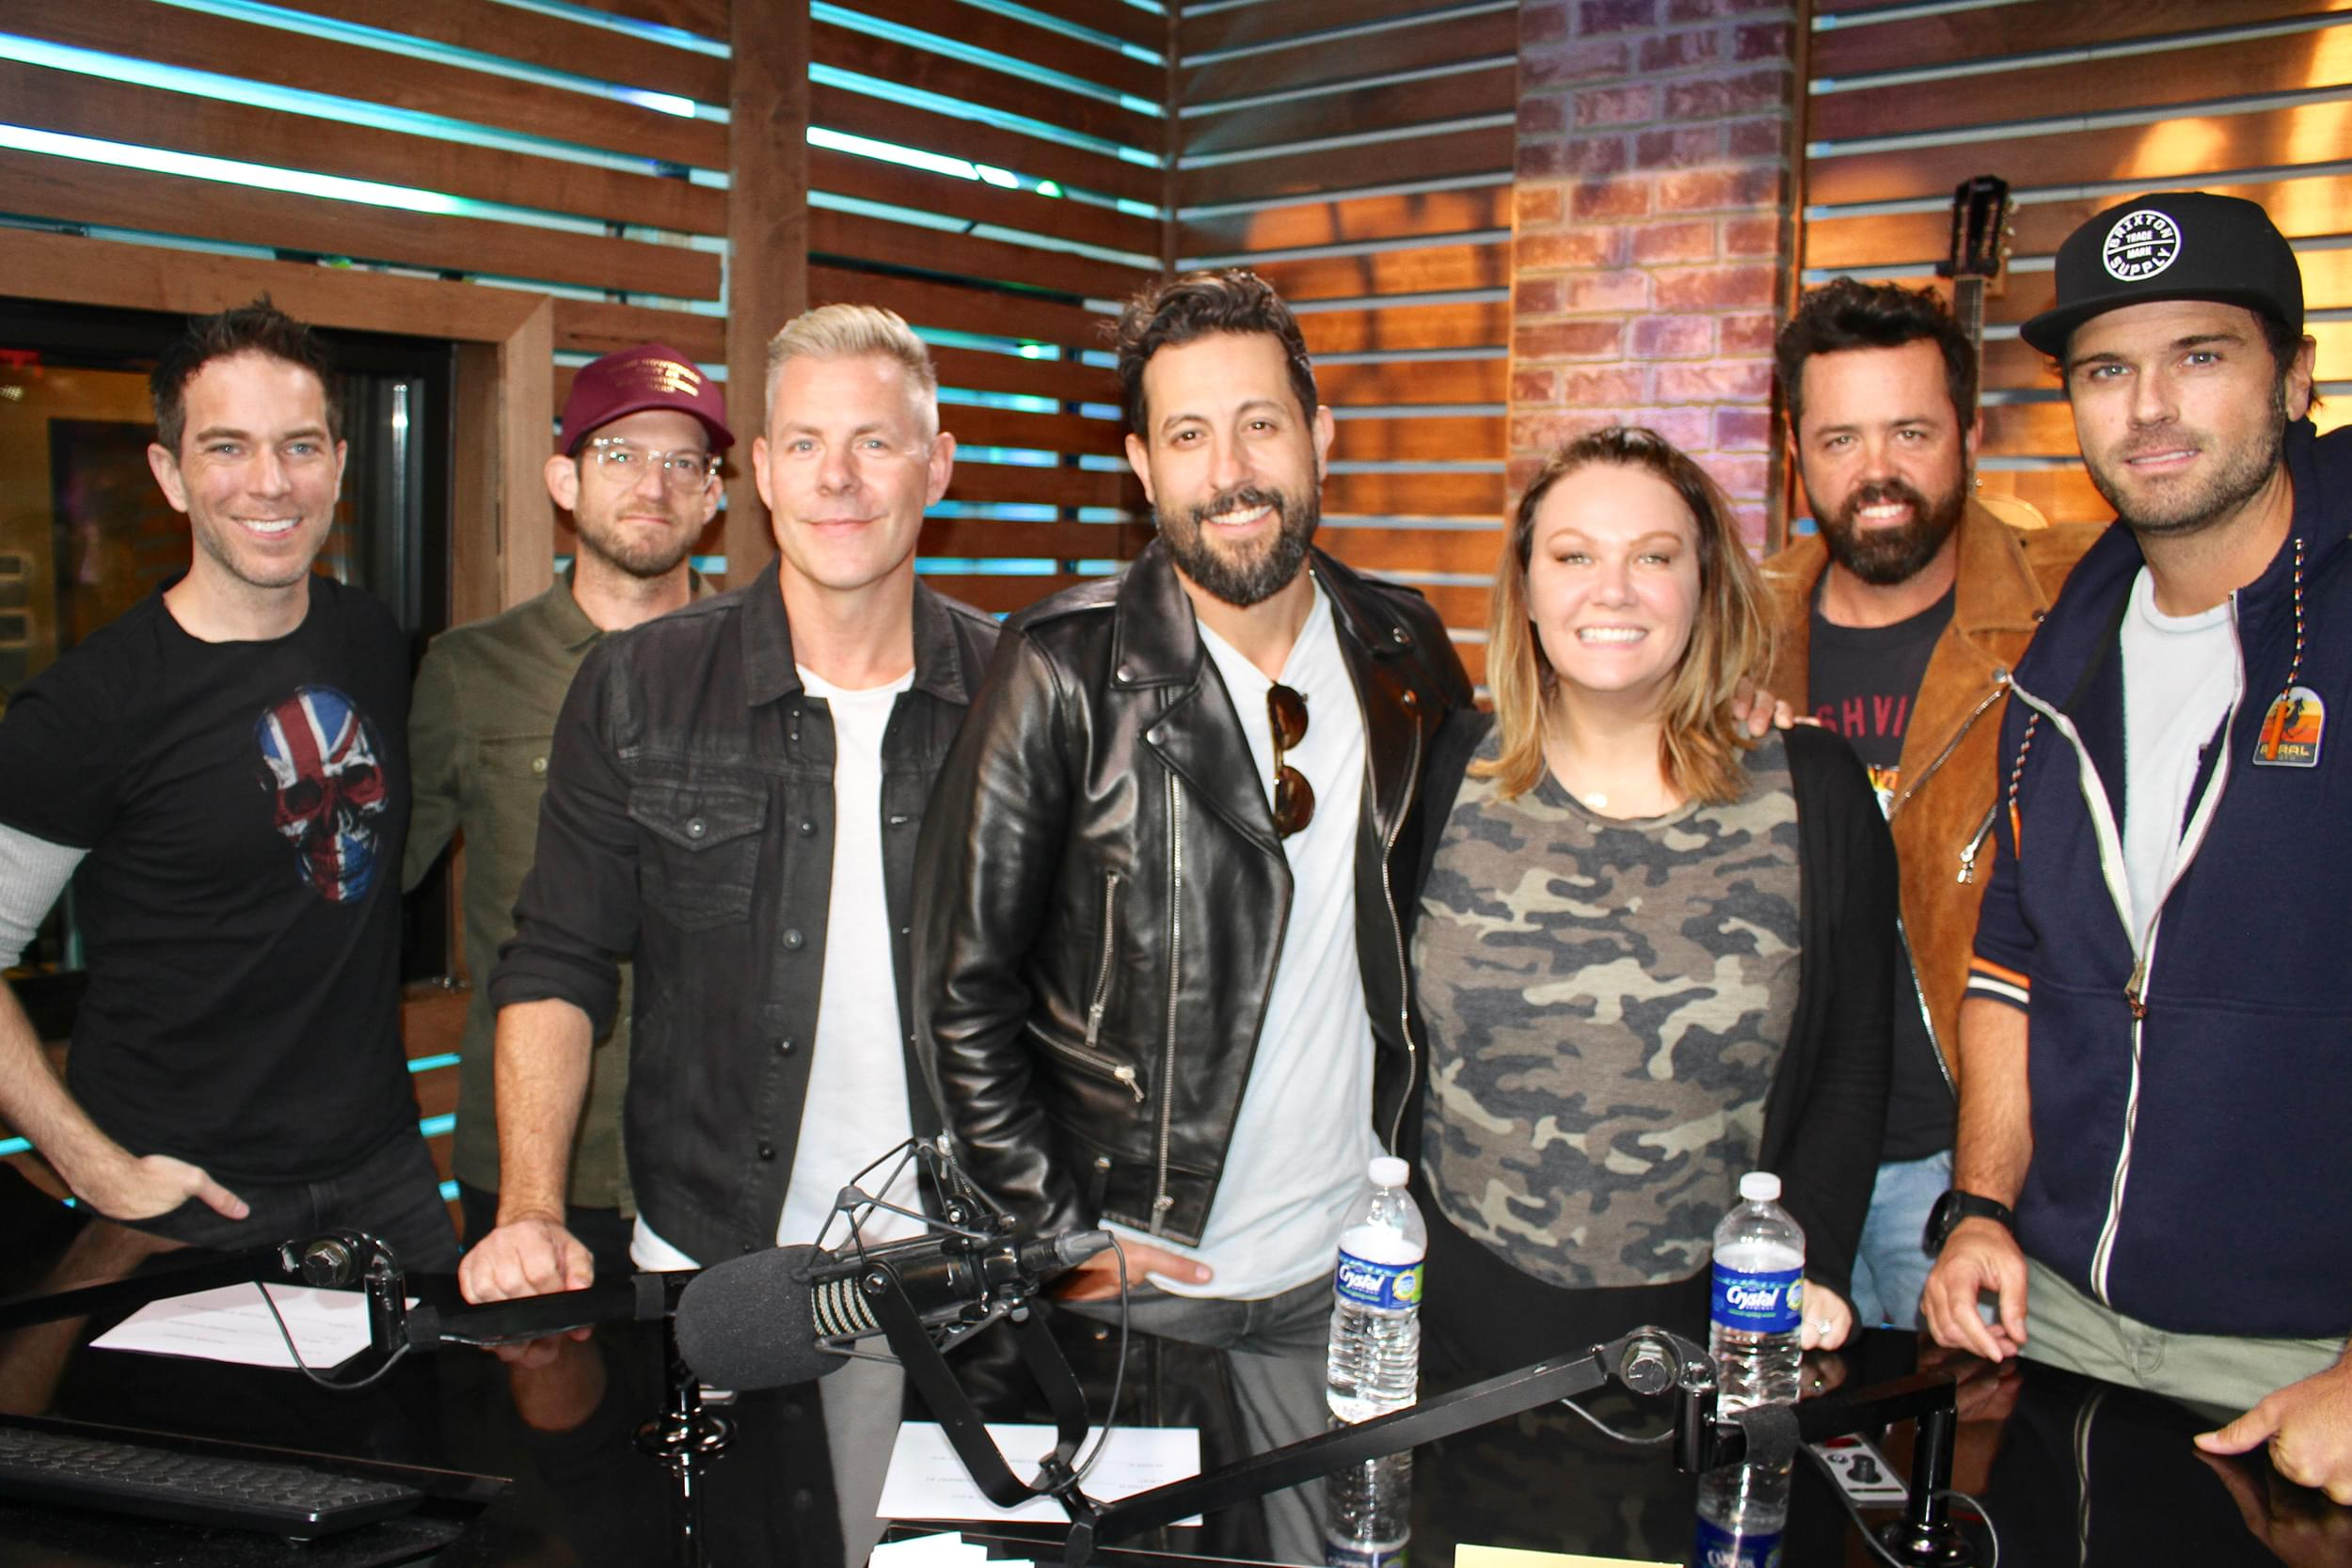 Old Dominion Reveals Runner-Up Titles for New Self-Titled Album, Talks Releasing New Music to Fans, Upcoming CMA Awards, & MORE